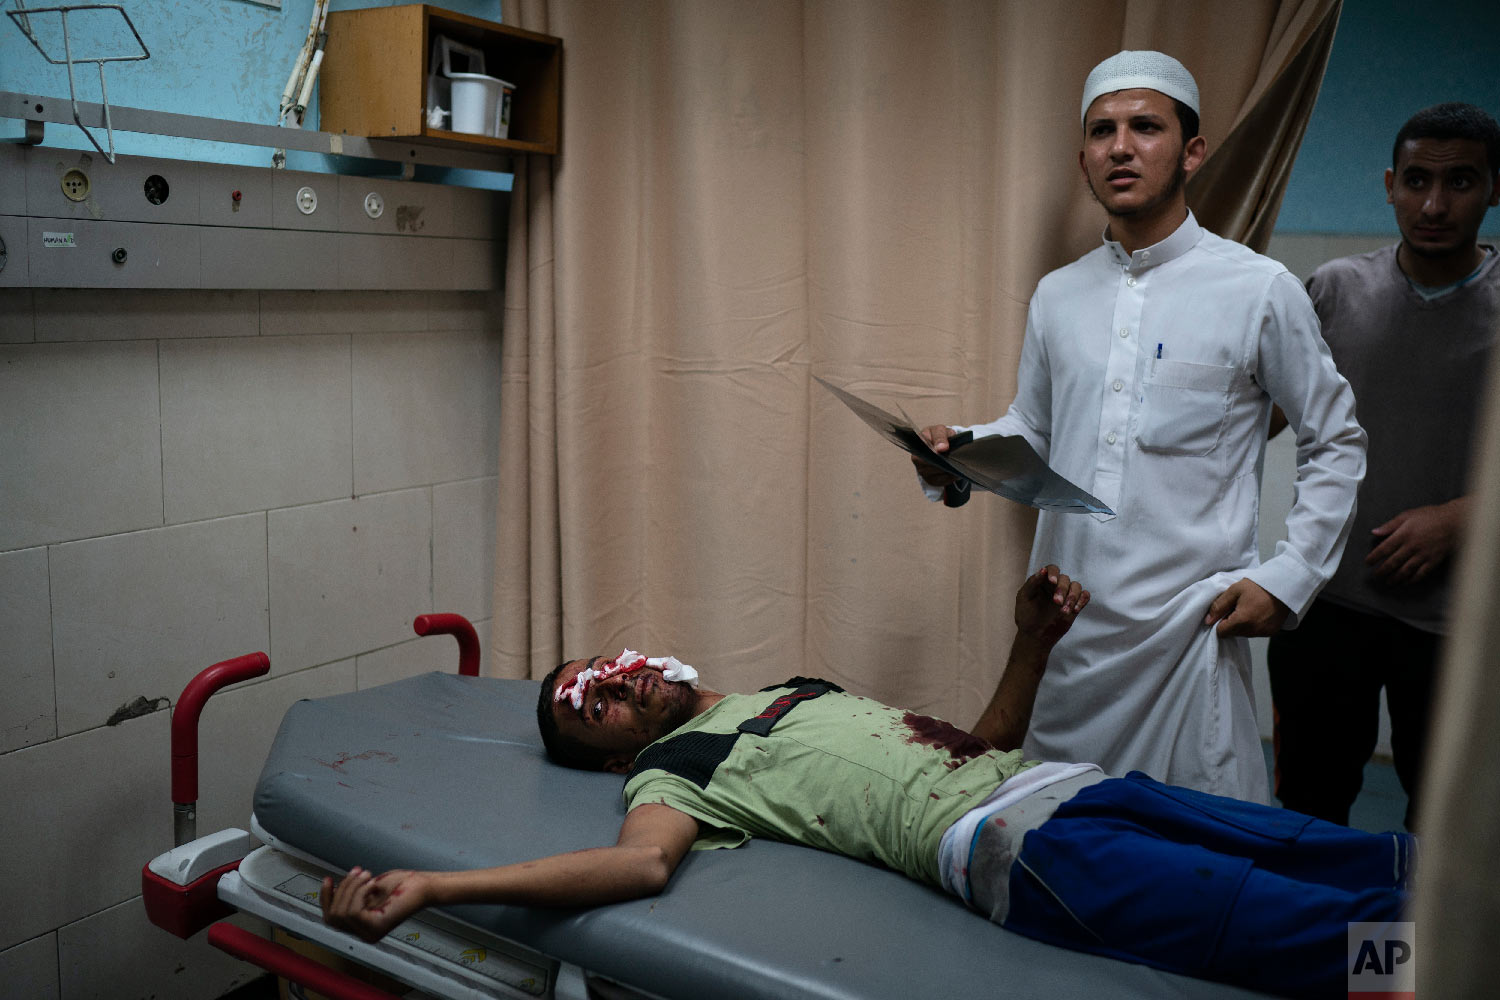 A Palestinian receives medical attention in a hospital after being injured during a protest at the Gaza Strip's border with Israel, east of Gaza City, Sept. 14, 2018. (AP Photo/Felipe Dana)